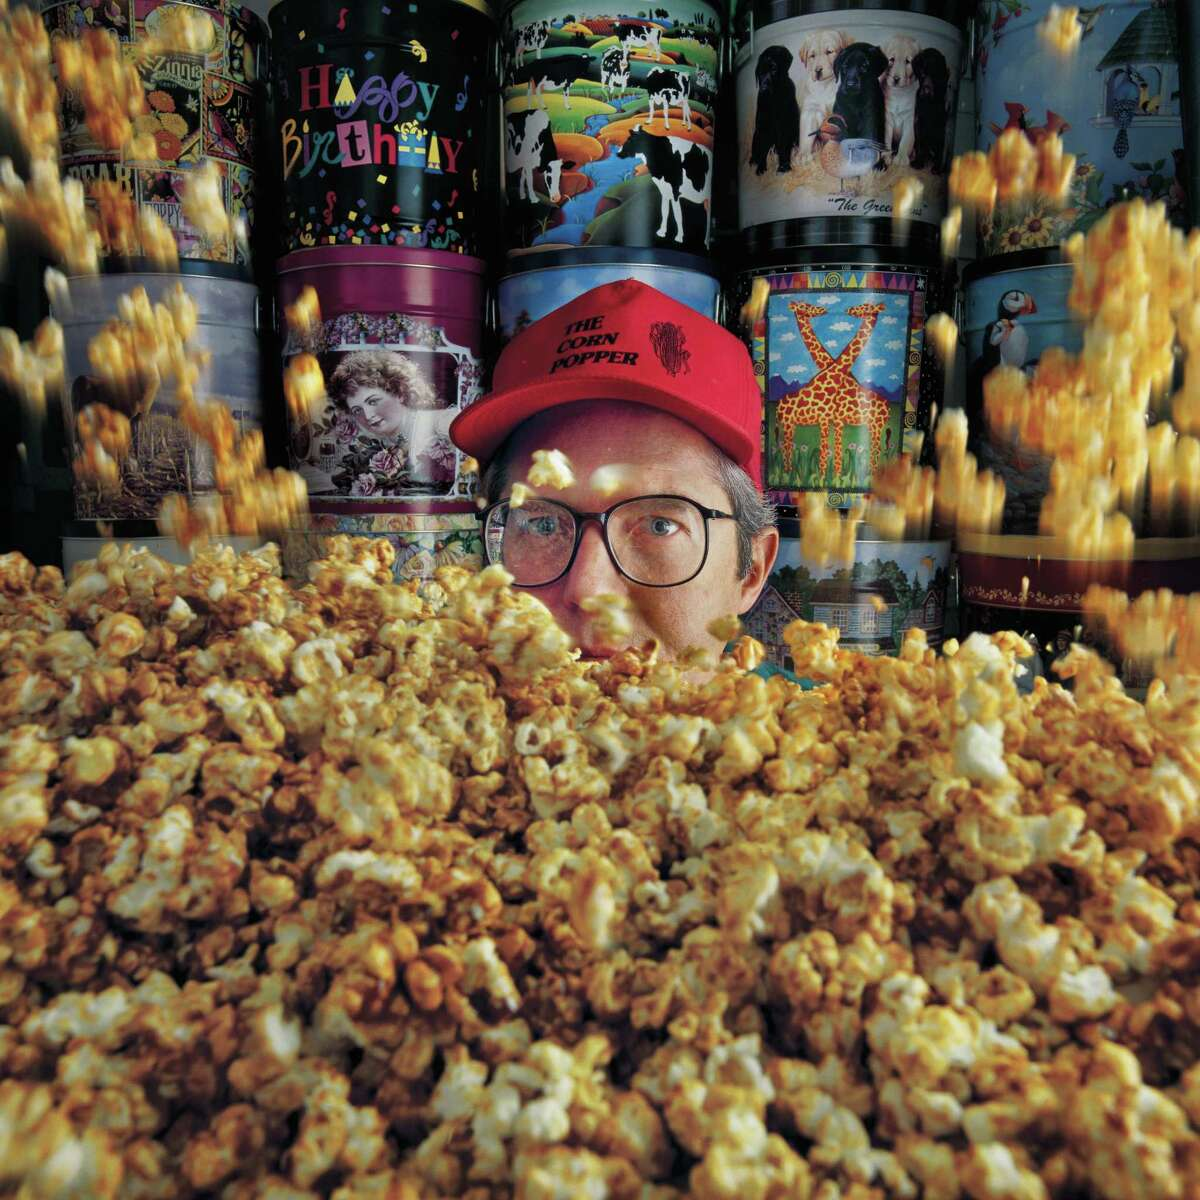 """J. Griffis Smith: """"When I arrived at the popcorn popper it was very sterile looking. I saw the decorative cans and the mound of popcorn and I used the cans to construct a wall behind the owner and had two of his employees and had them drop scoops of popcorn around him to get the illusion of popping."""""""